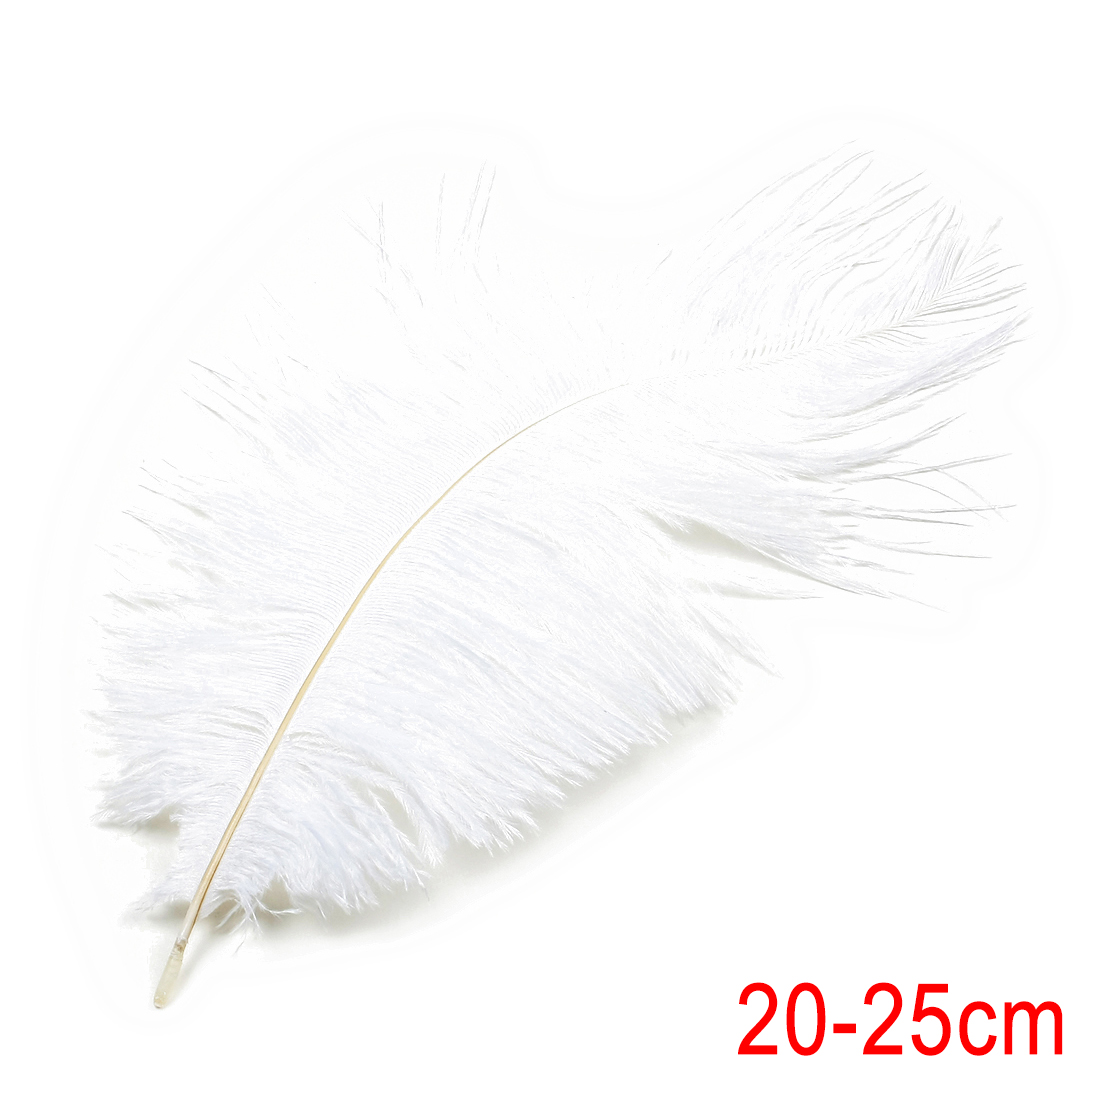 8-10 inch / 20-25cm Ostrich Feather for Wedding Party Decoration White